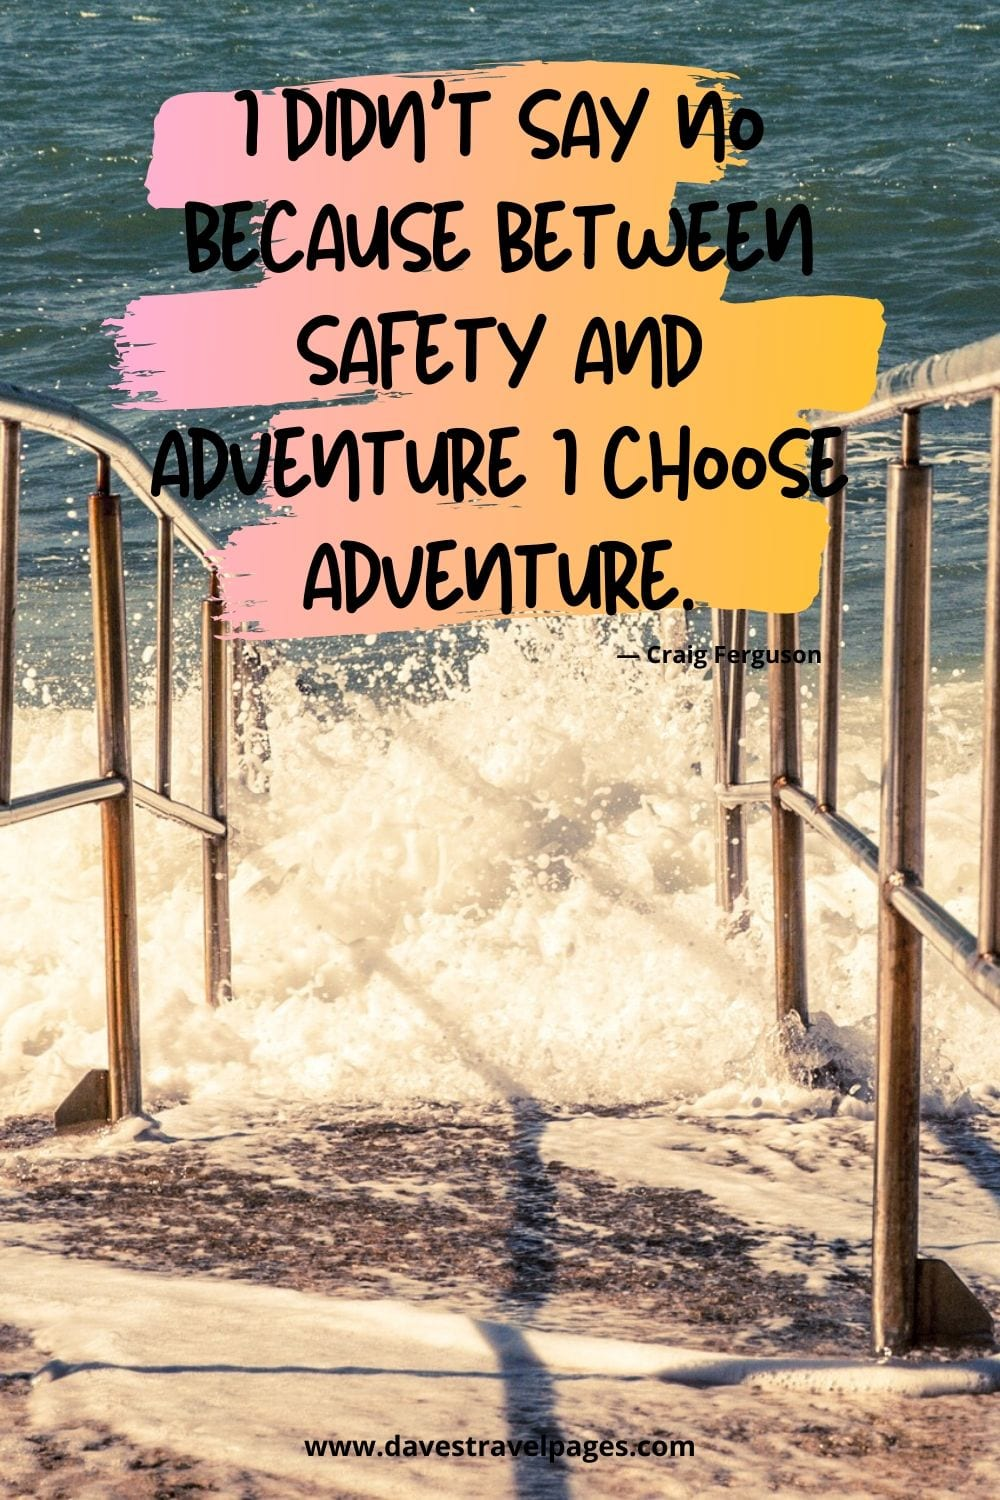 "Famous adventure quotes - ""I didn't say no because between safety and adventure I choose adventure.""― Craig Ferguson"